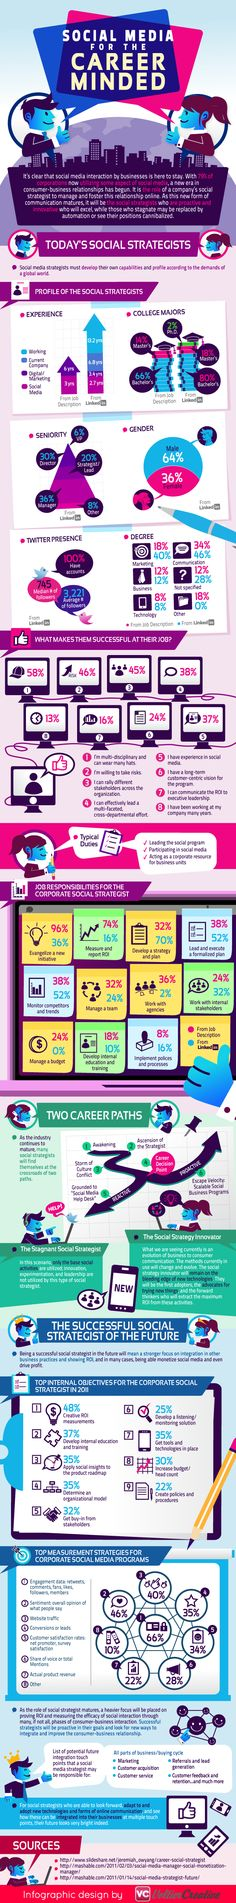 Awesome infographic via mashable on social media strategy